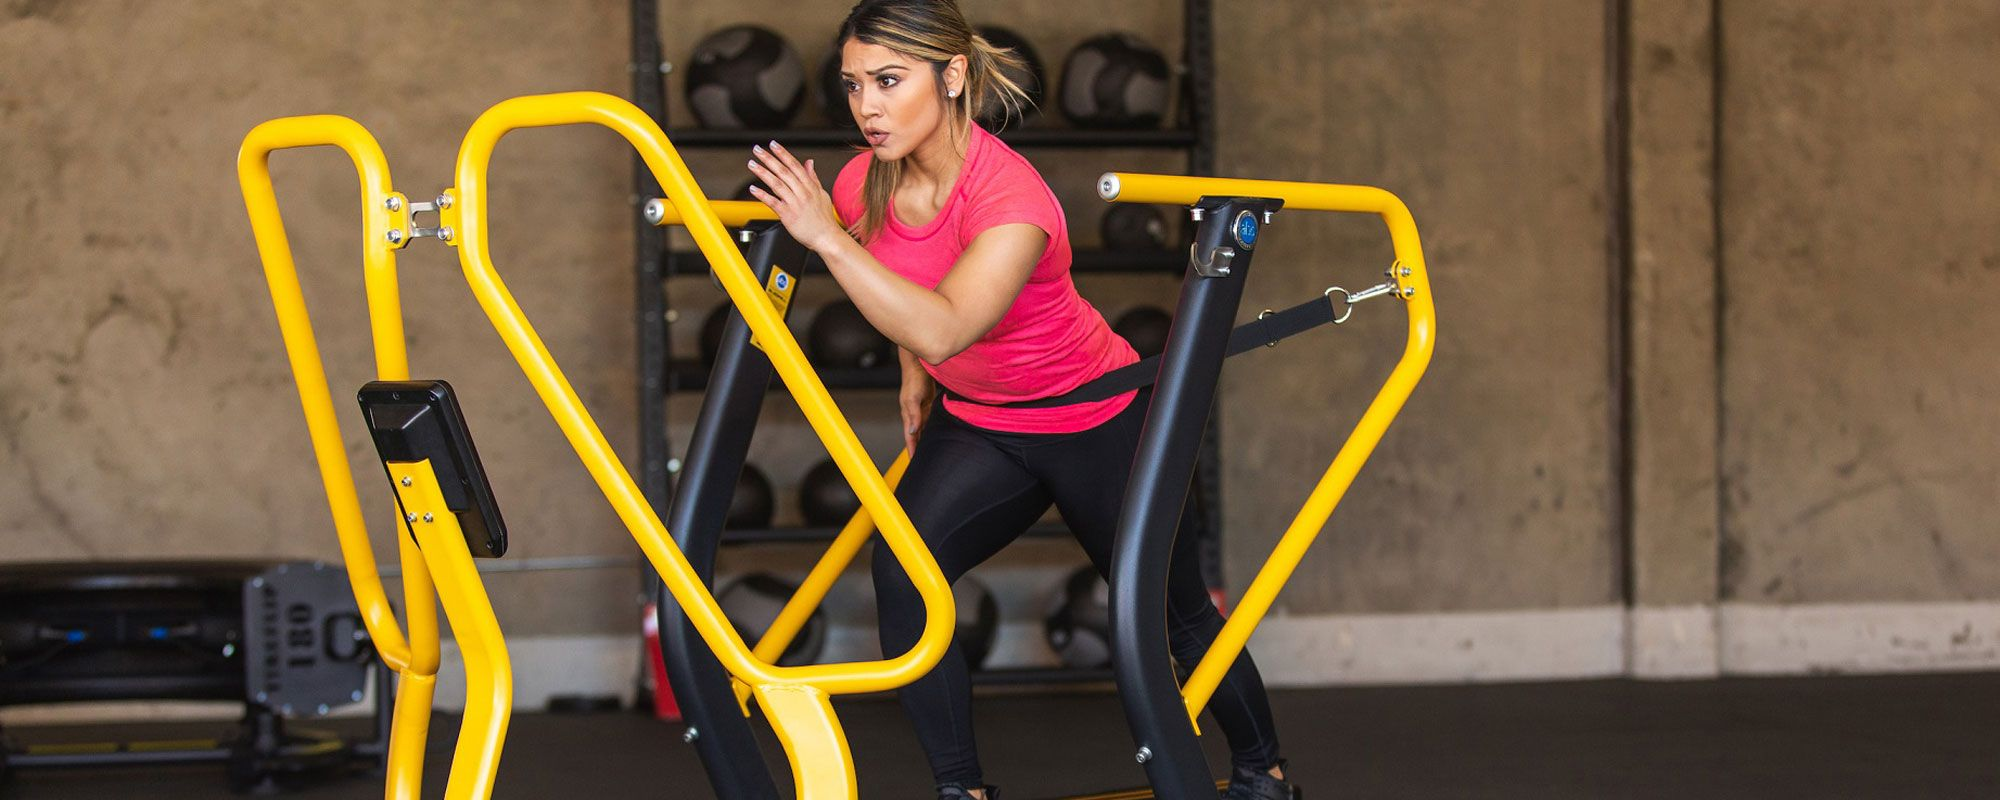 Woman using running resistance equipment in gym